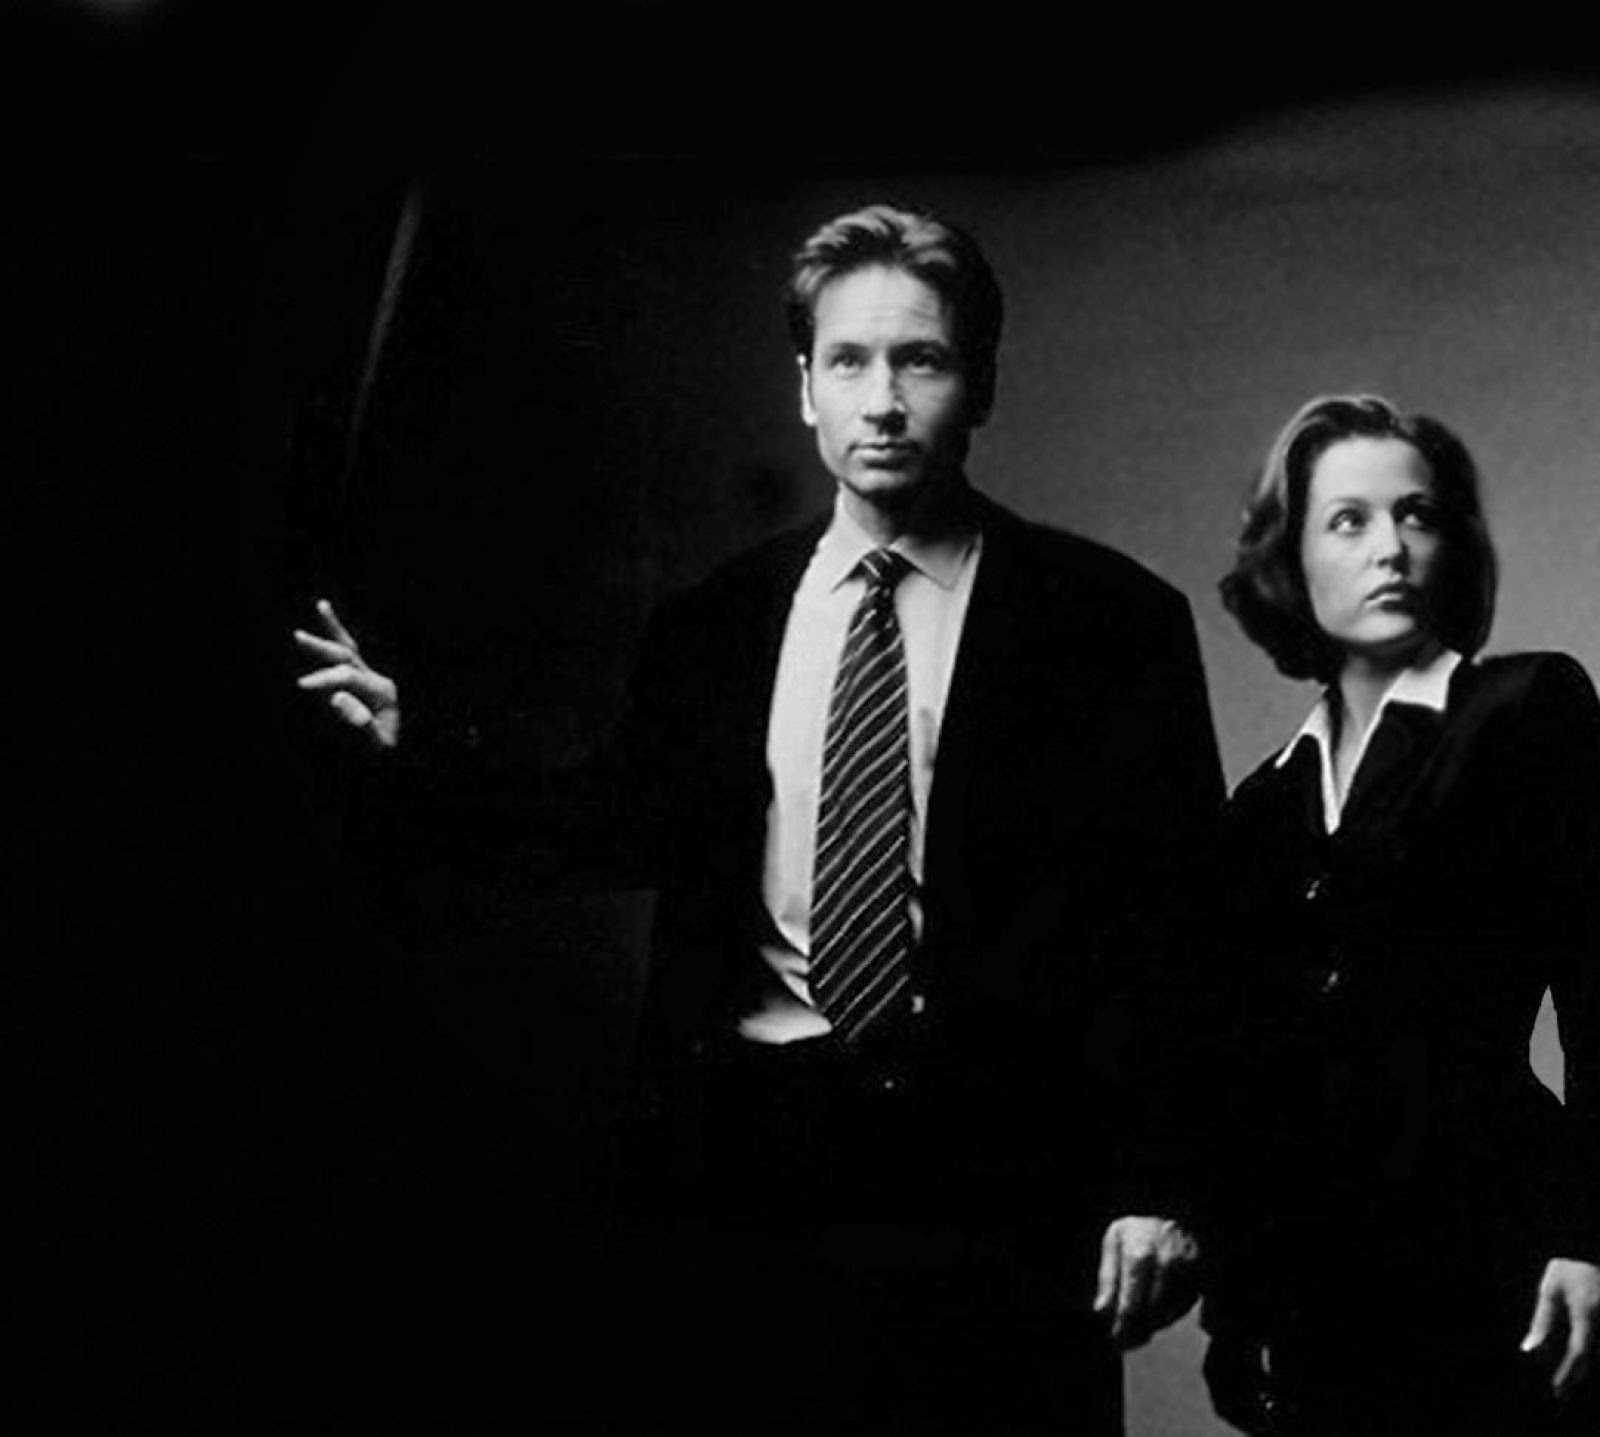 expediente x, mulder, scully, david duchovny, gillian anderson, relanzamiento